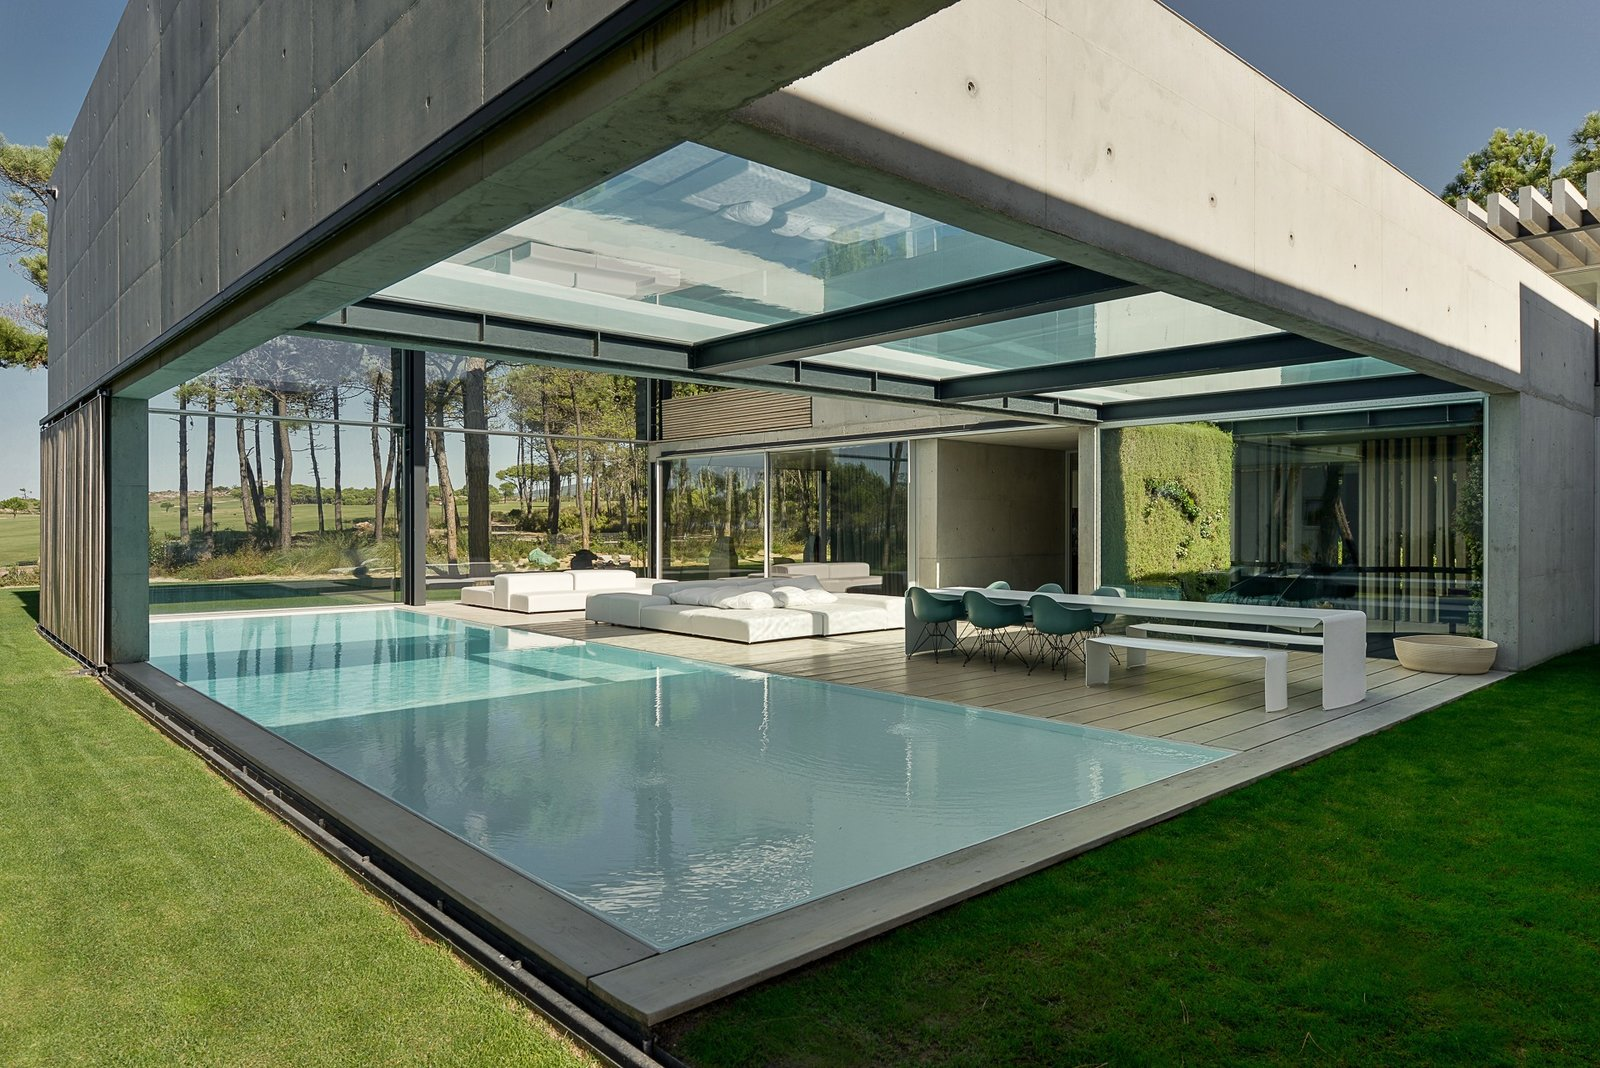 Tagged: Outdoor, Large Pool, Back Yard, Swimming Pool, Grass, Decking Patio, Porch, Deck, Large Patio, Porch, Deck, Wood Patio, Porch, Deck, and Trees. A Pool With a Glass Bottom Hovers Over Another at a House in the Portuguese Riviera - Photo 3 of 13